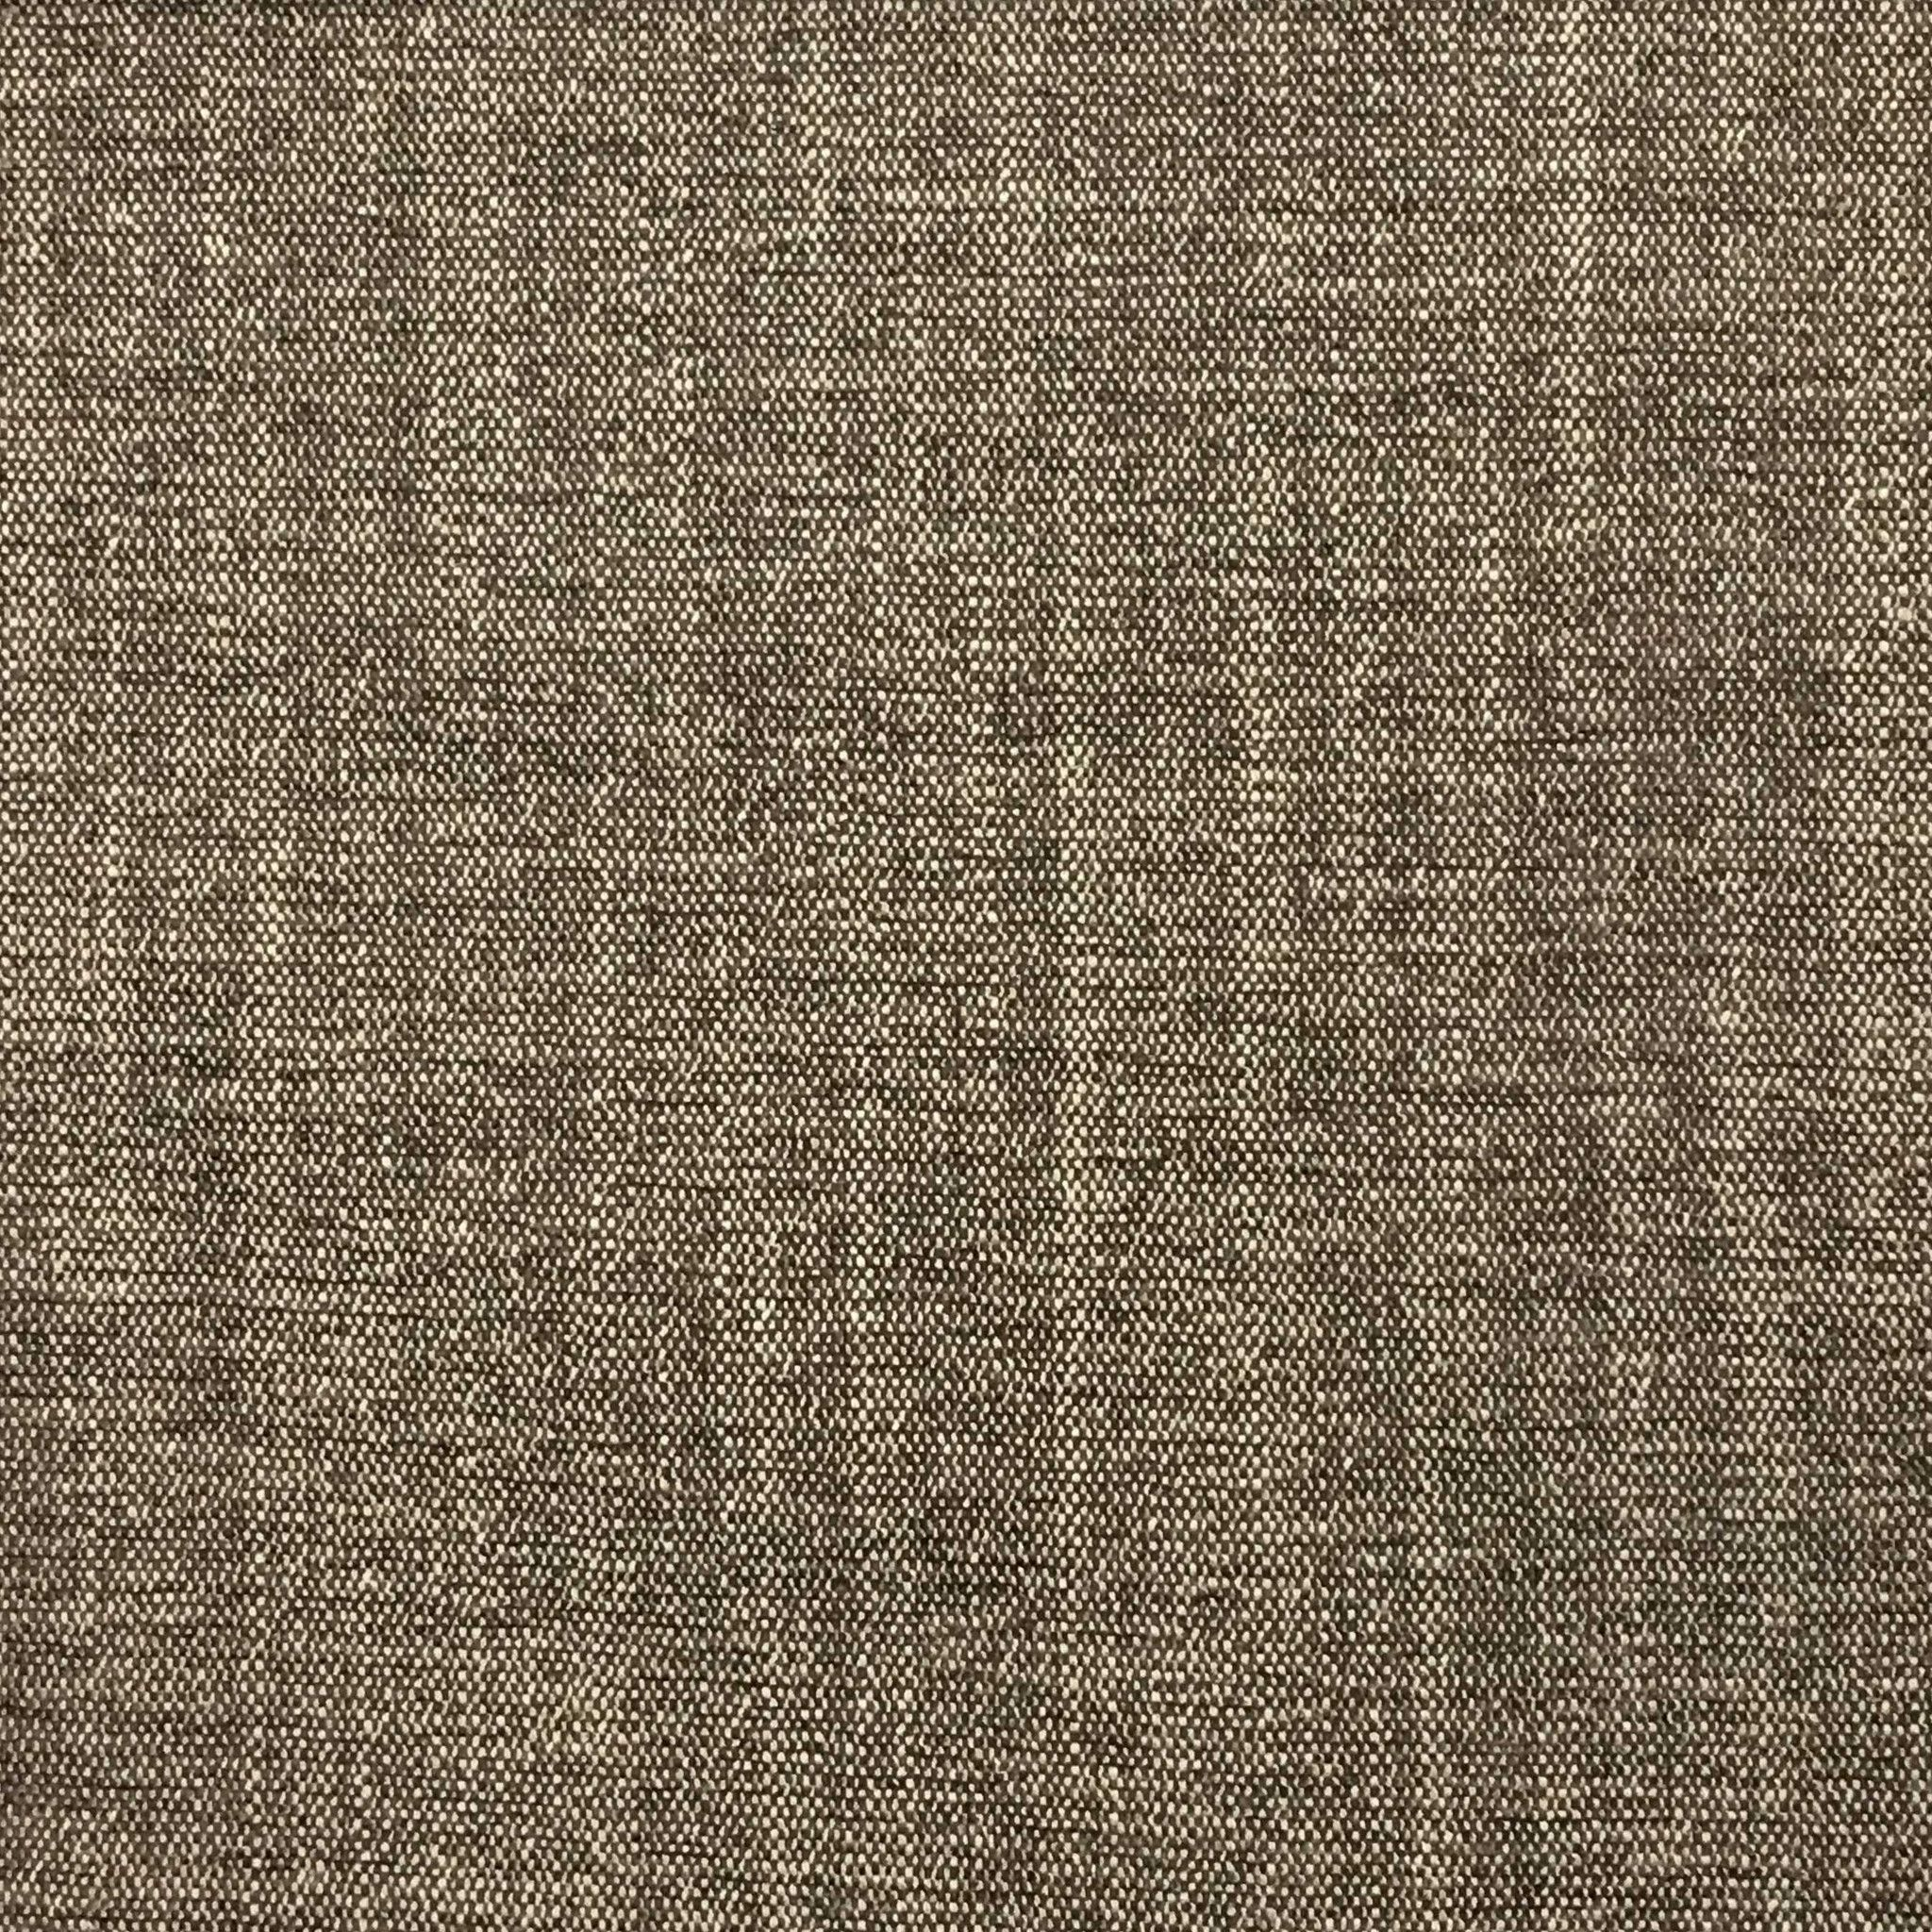 Bronson - Linen Polyester Blend Textured Chenille Home Decor Upholstery Fabric by the Yard - Available in 17 Colors